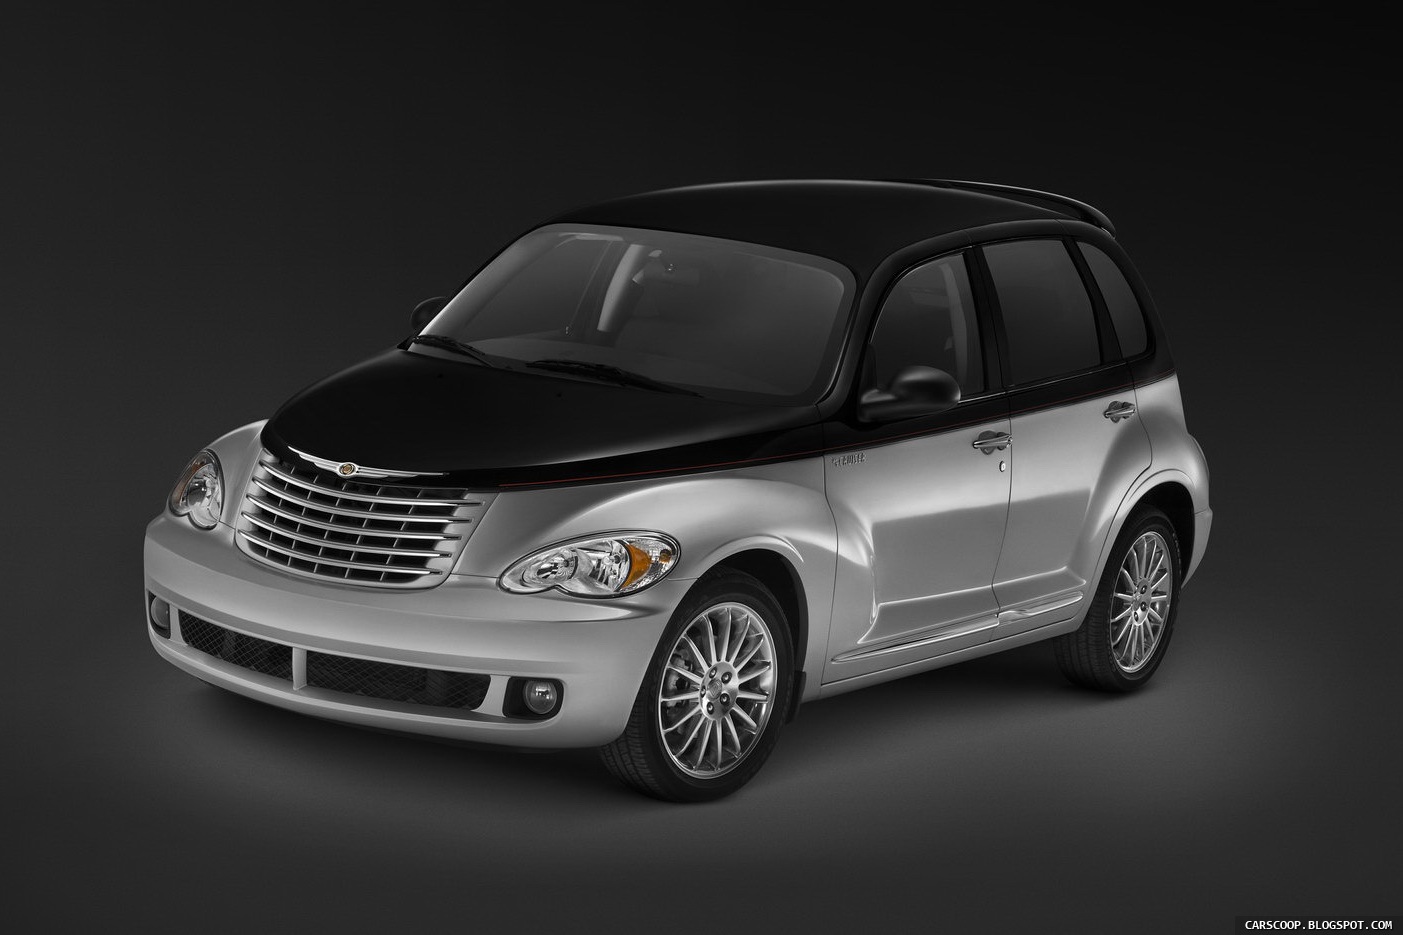 Is the chrysler pt cruiser still in production